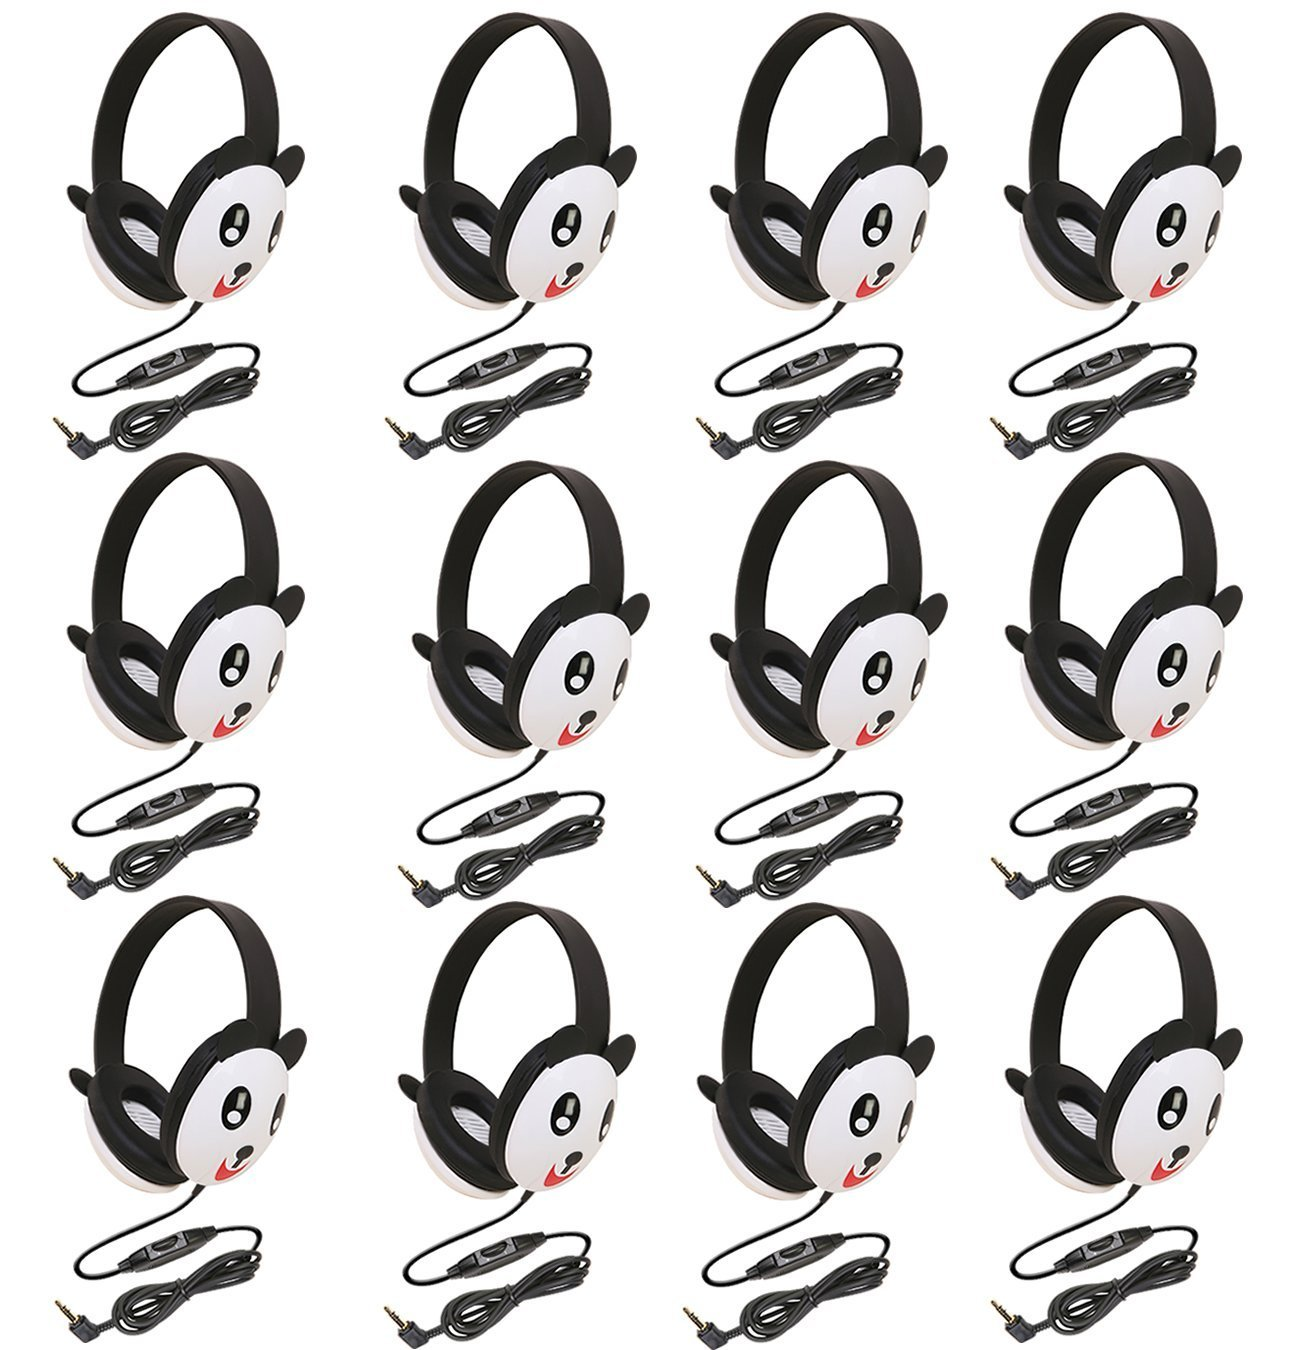 Auriculares Califone 2810-PA Listening First Stereo Panda Motif - Pack of 12